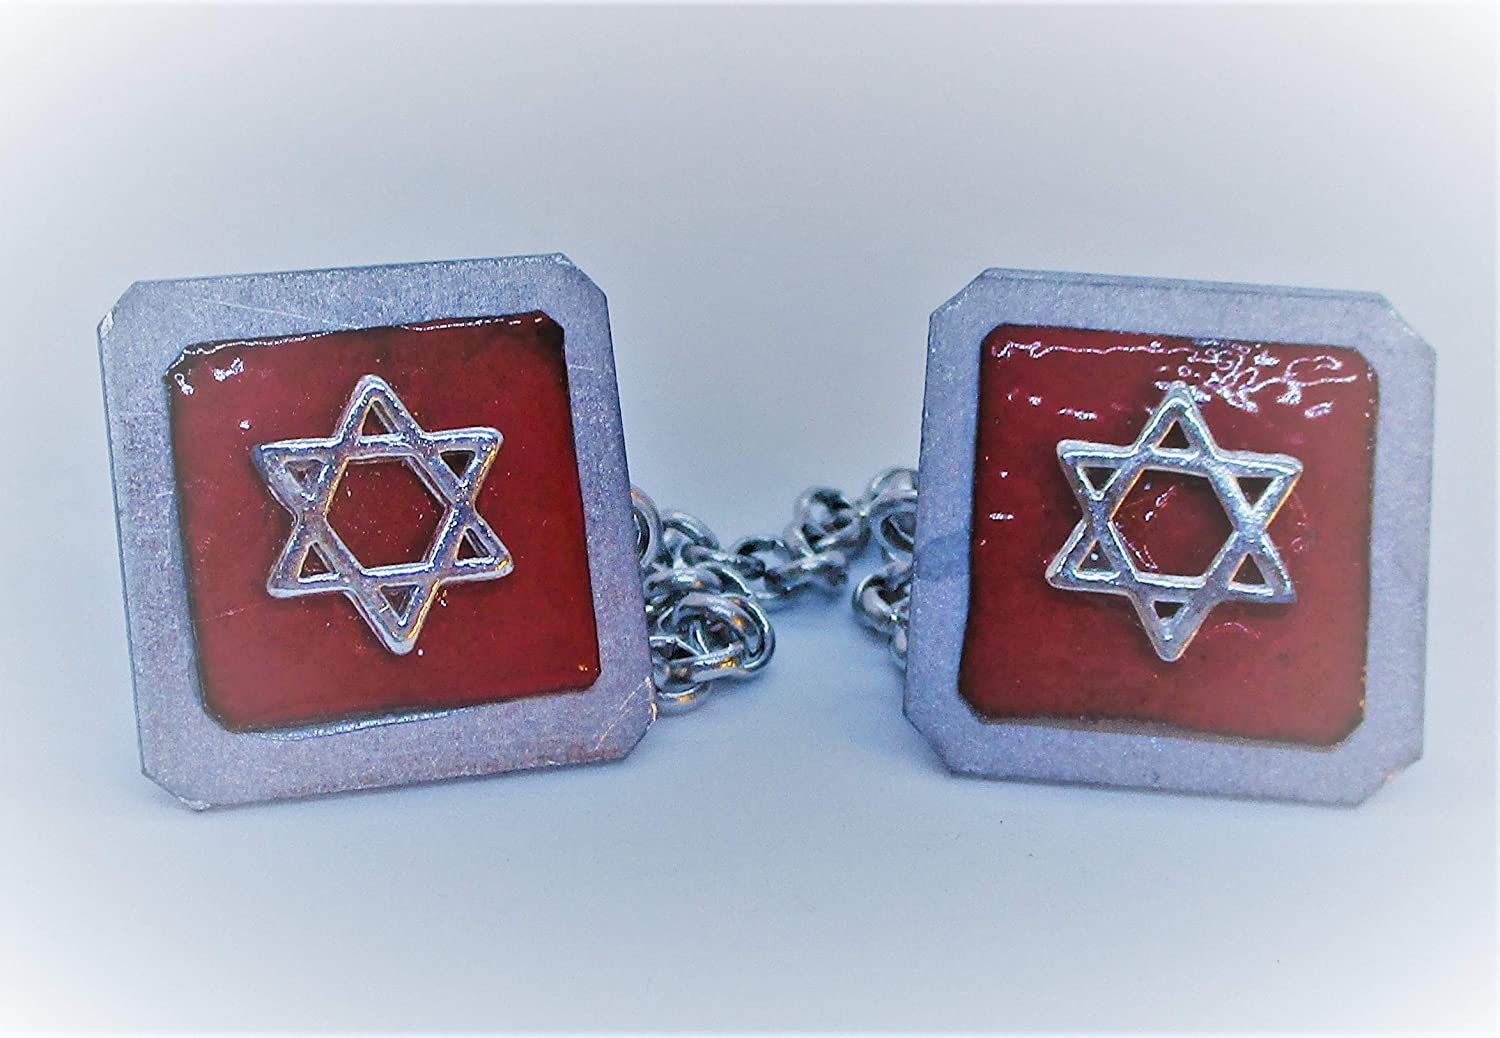 Tallit Clips - Star 5 ☆ popular of Red David Enamel New Orleans Mall on Copper